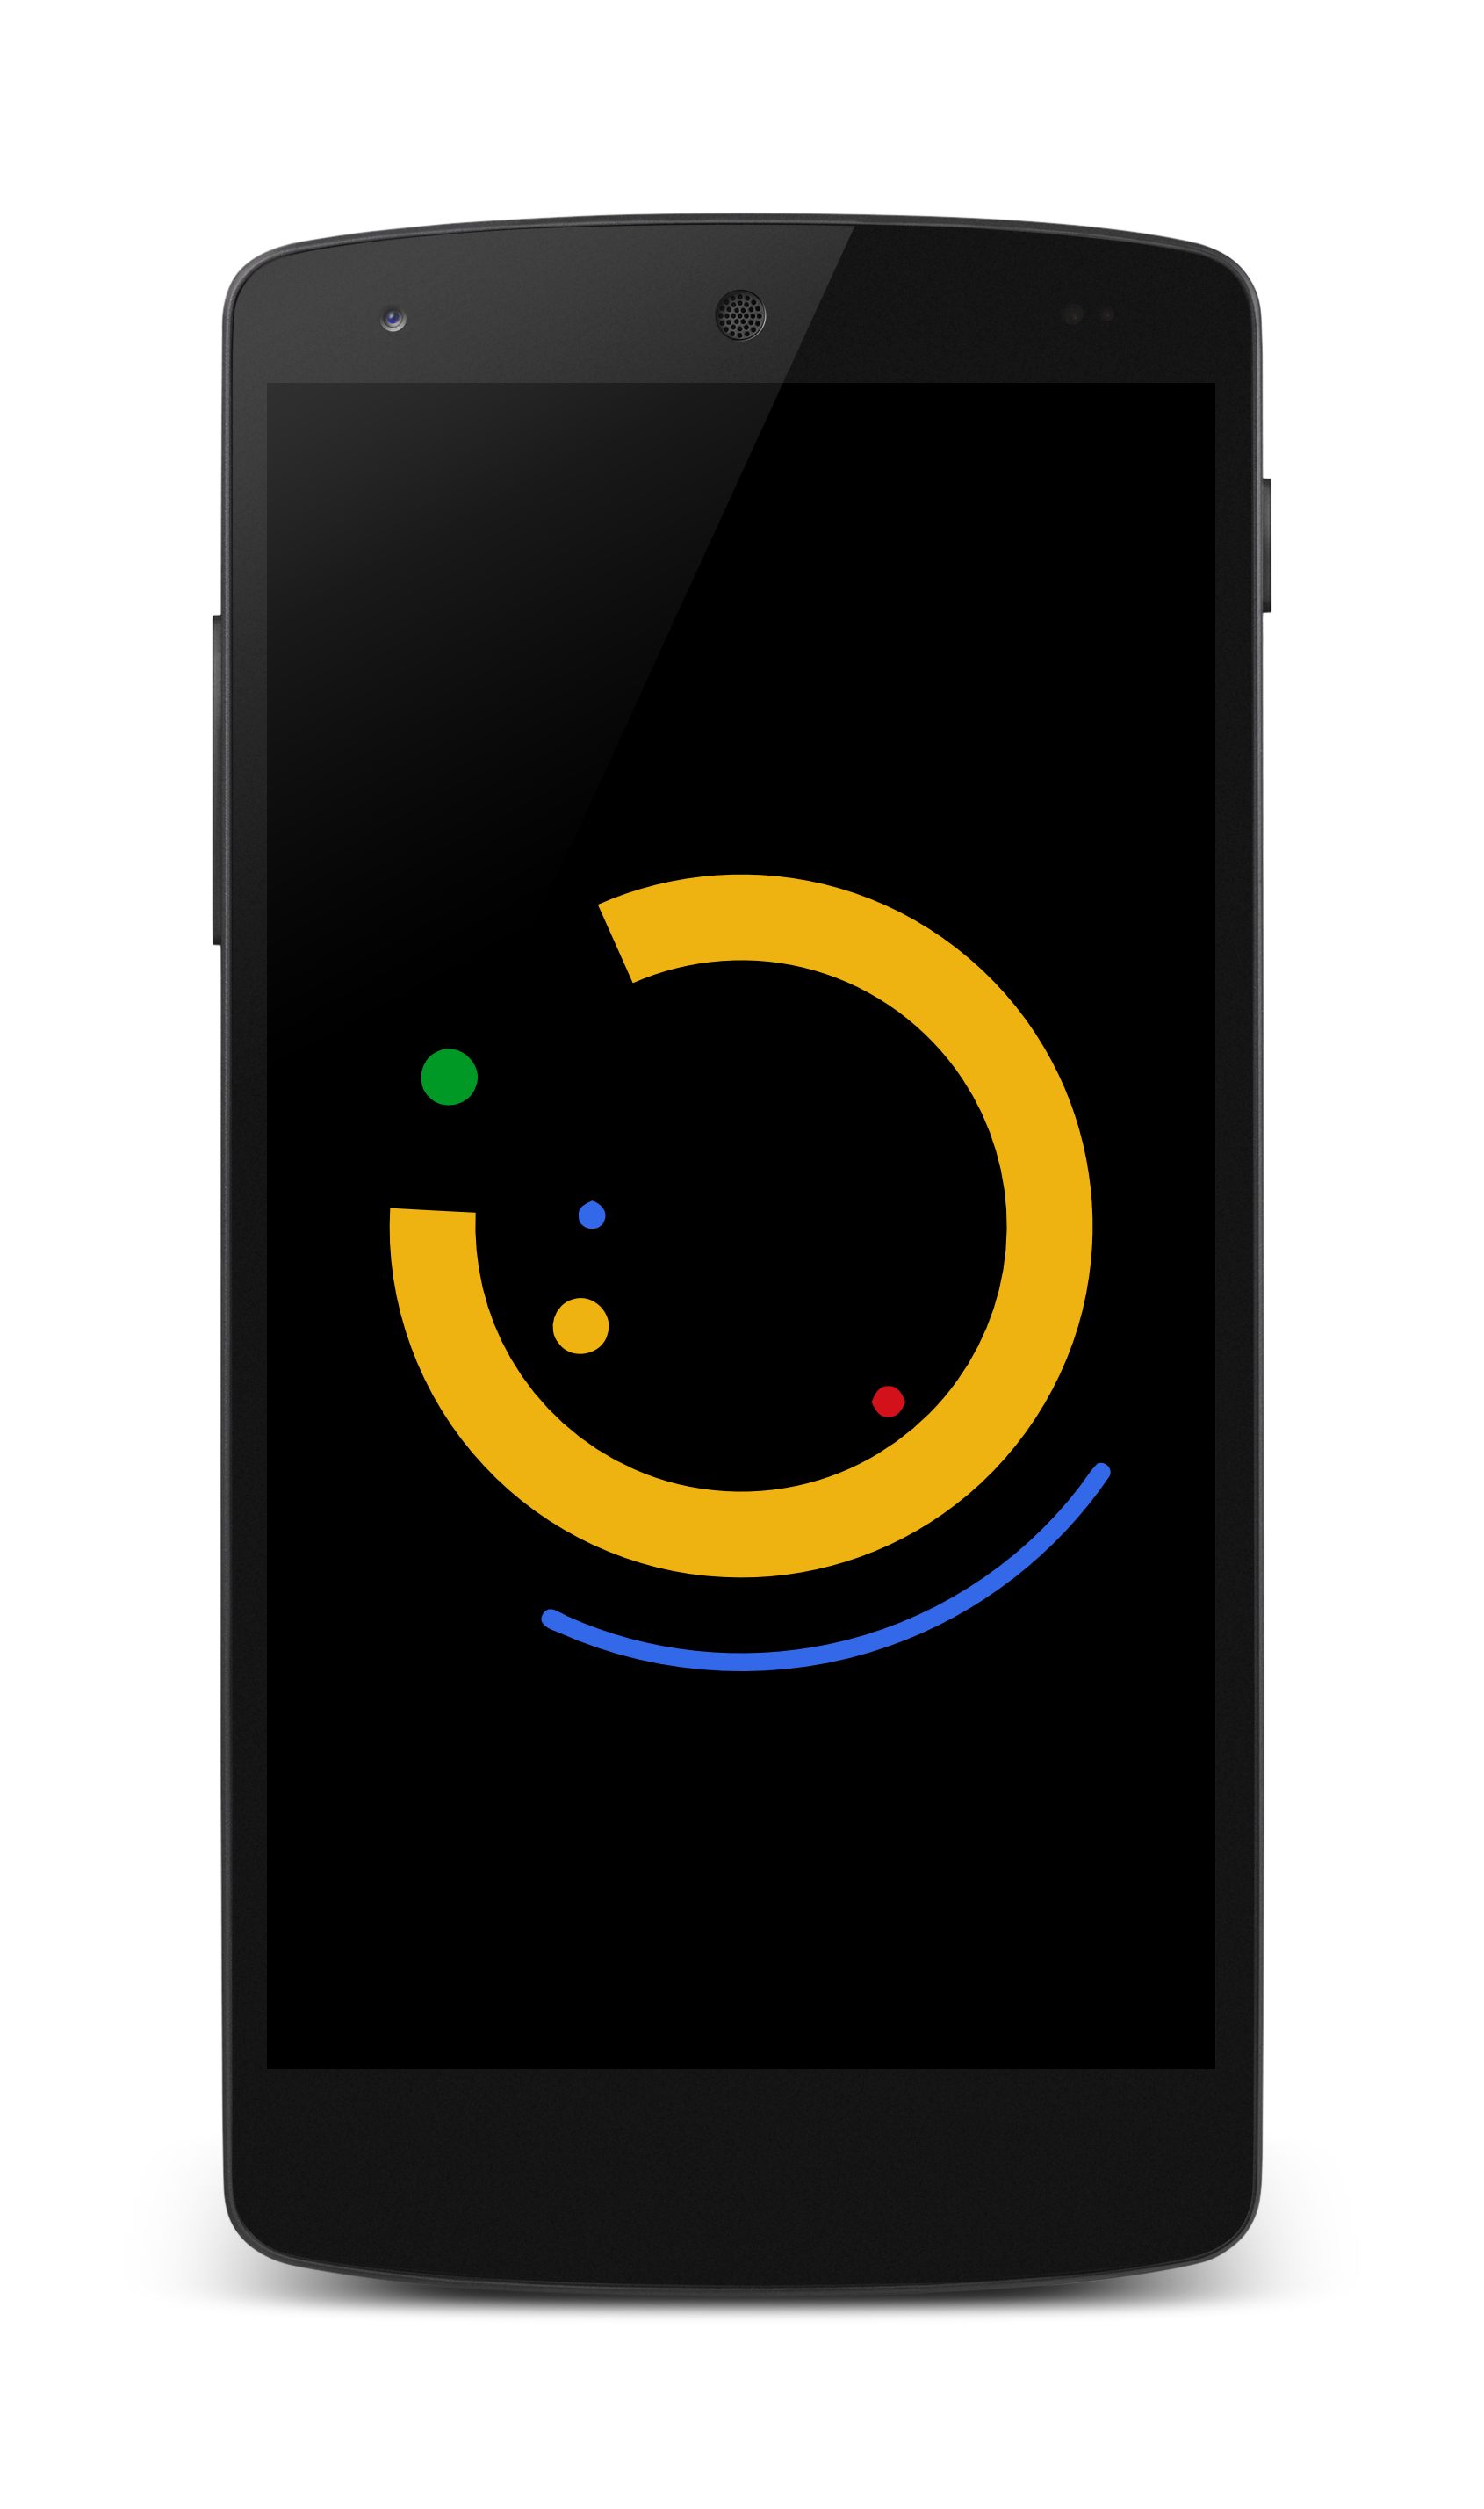 Android Wear Boot Animation For All!